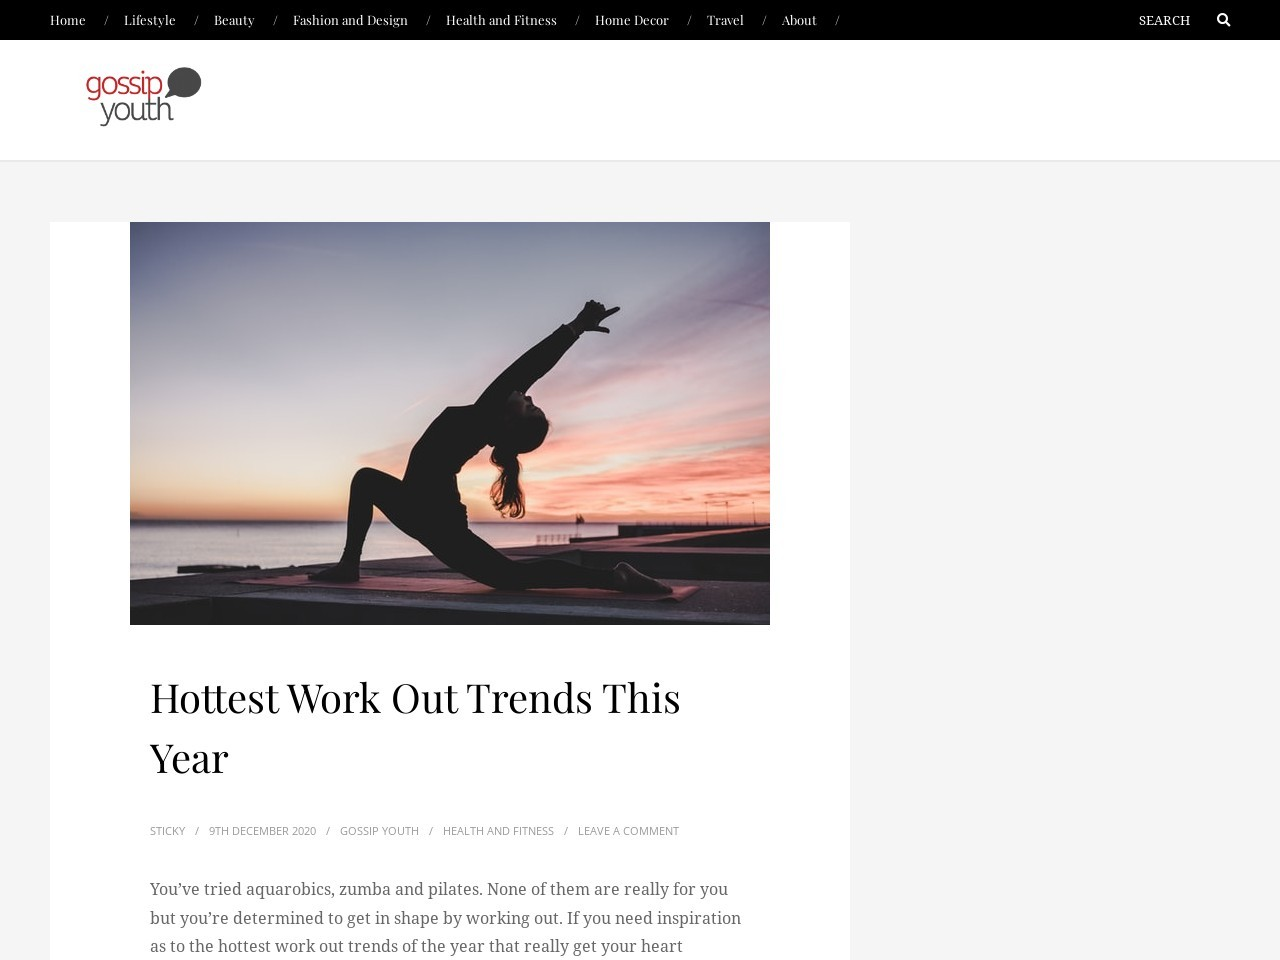 Hottest work out trends this year